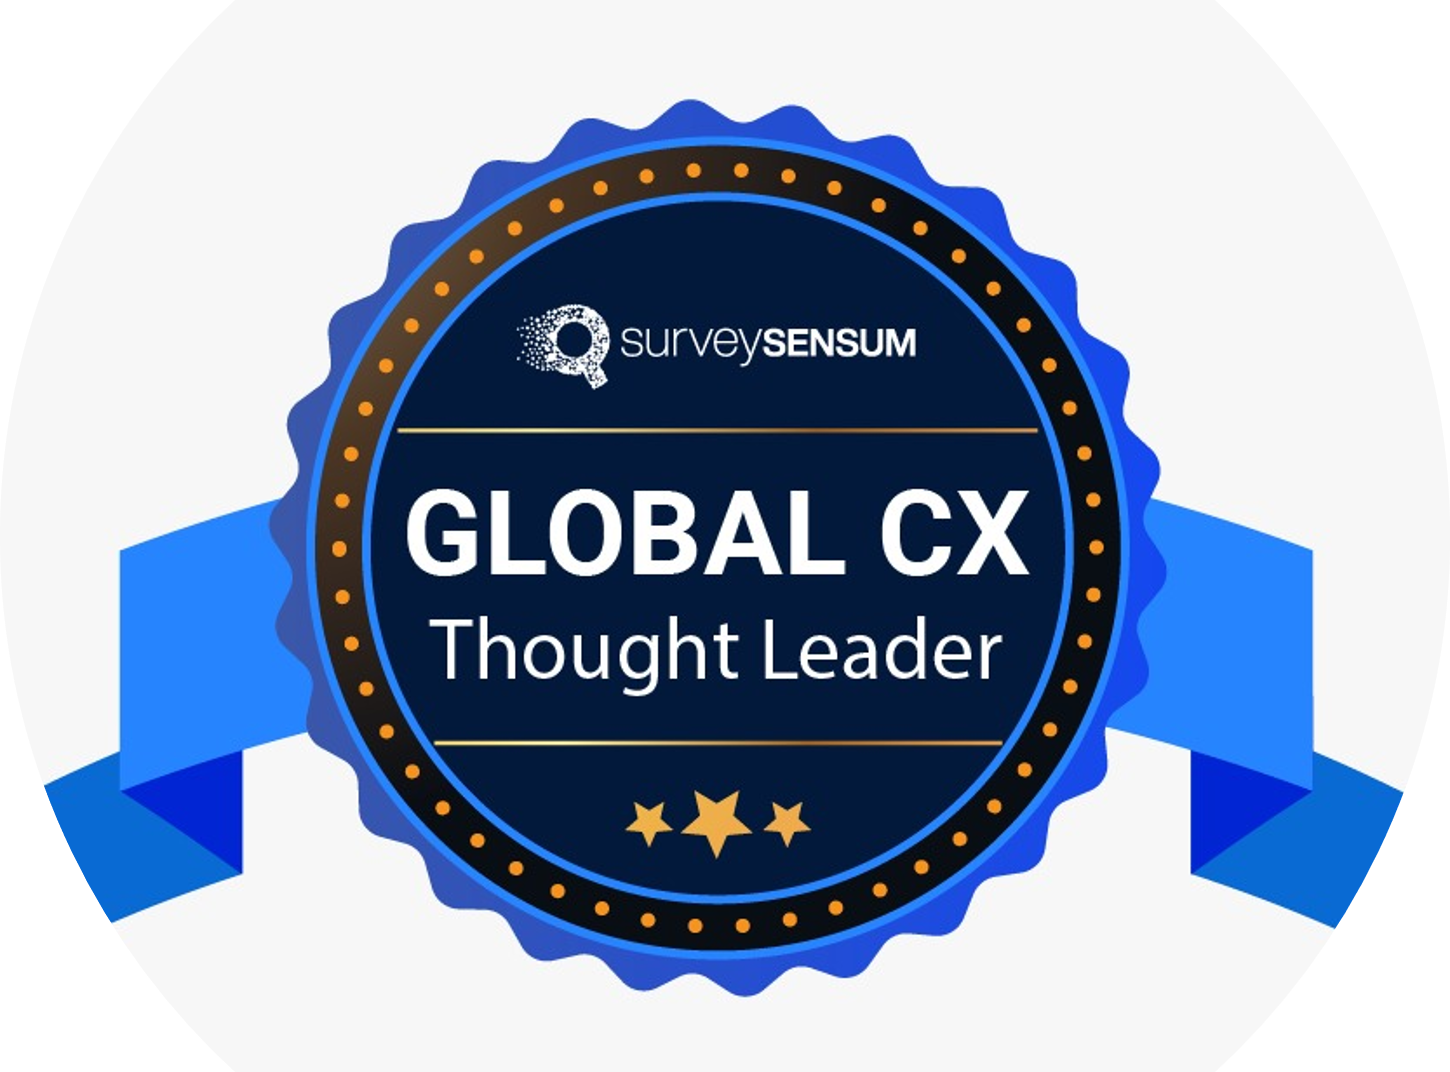 Global Customer Experience Thought Leader